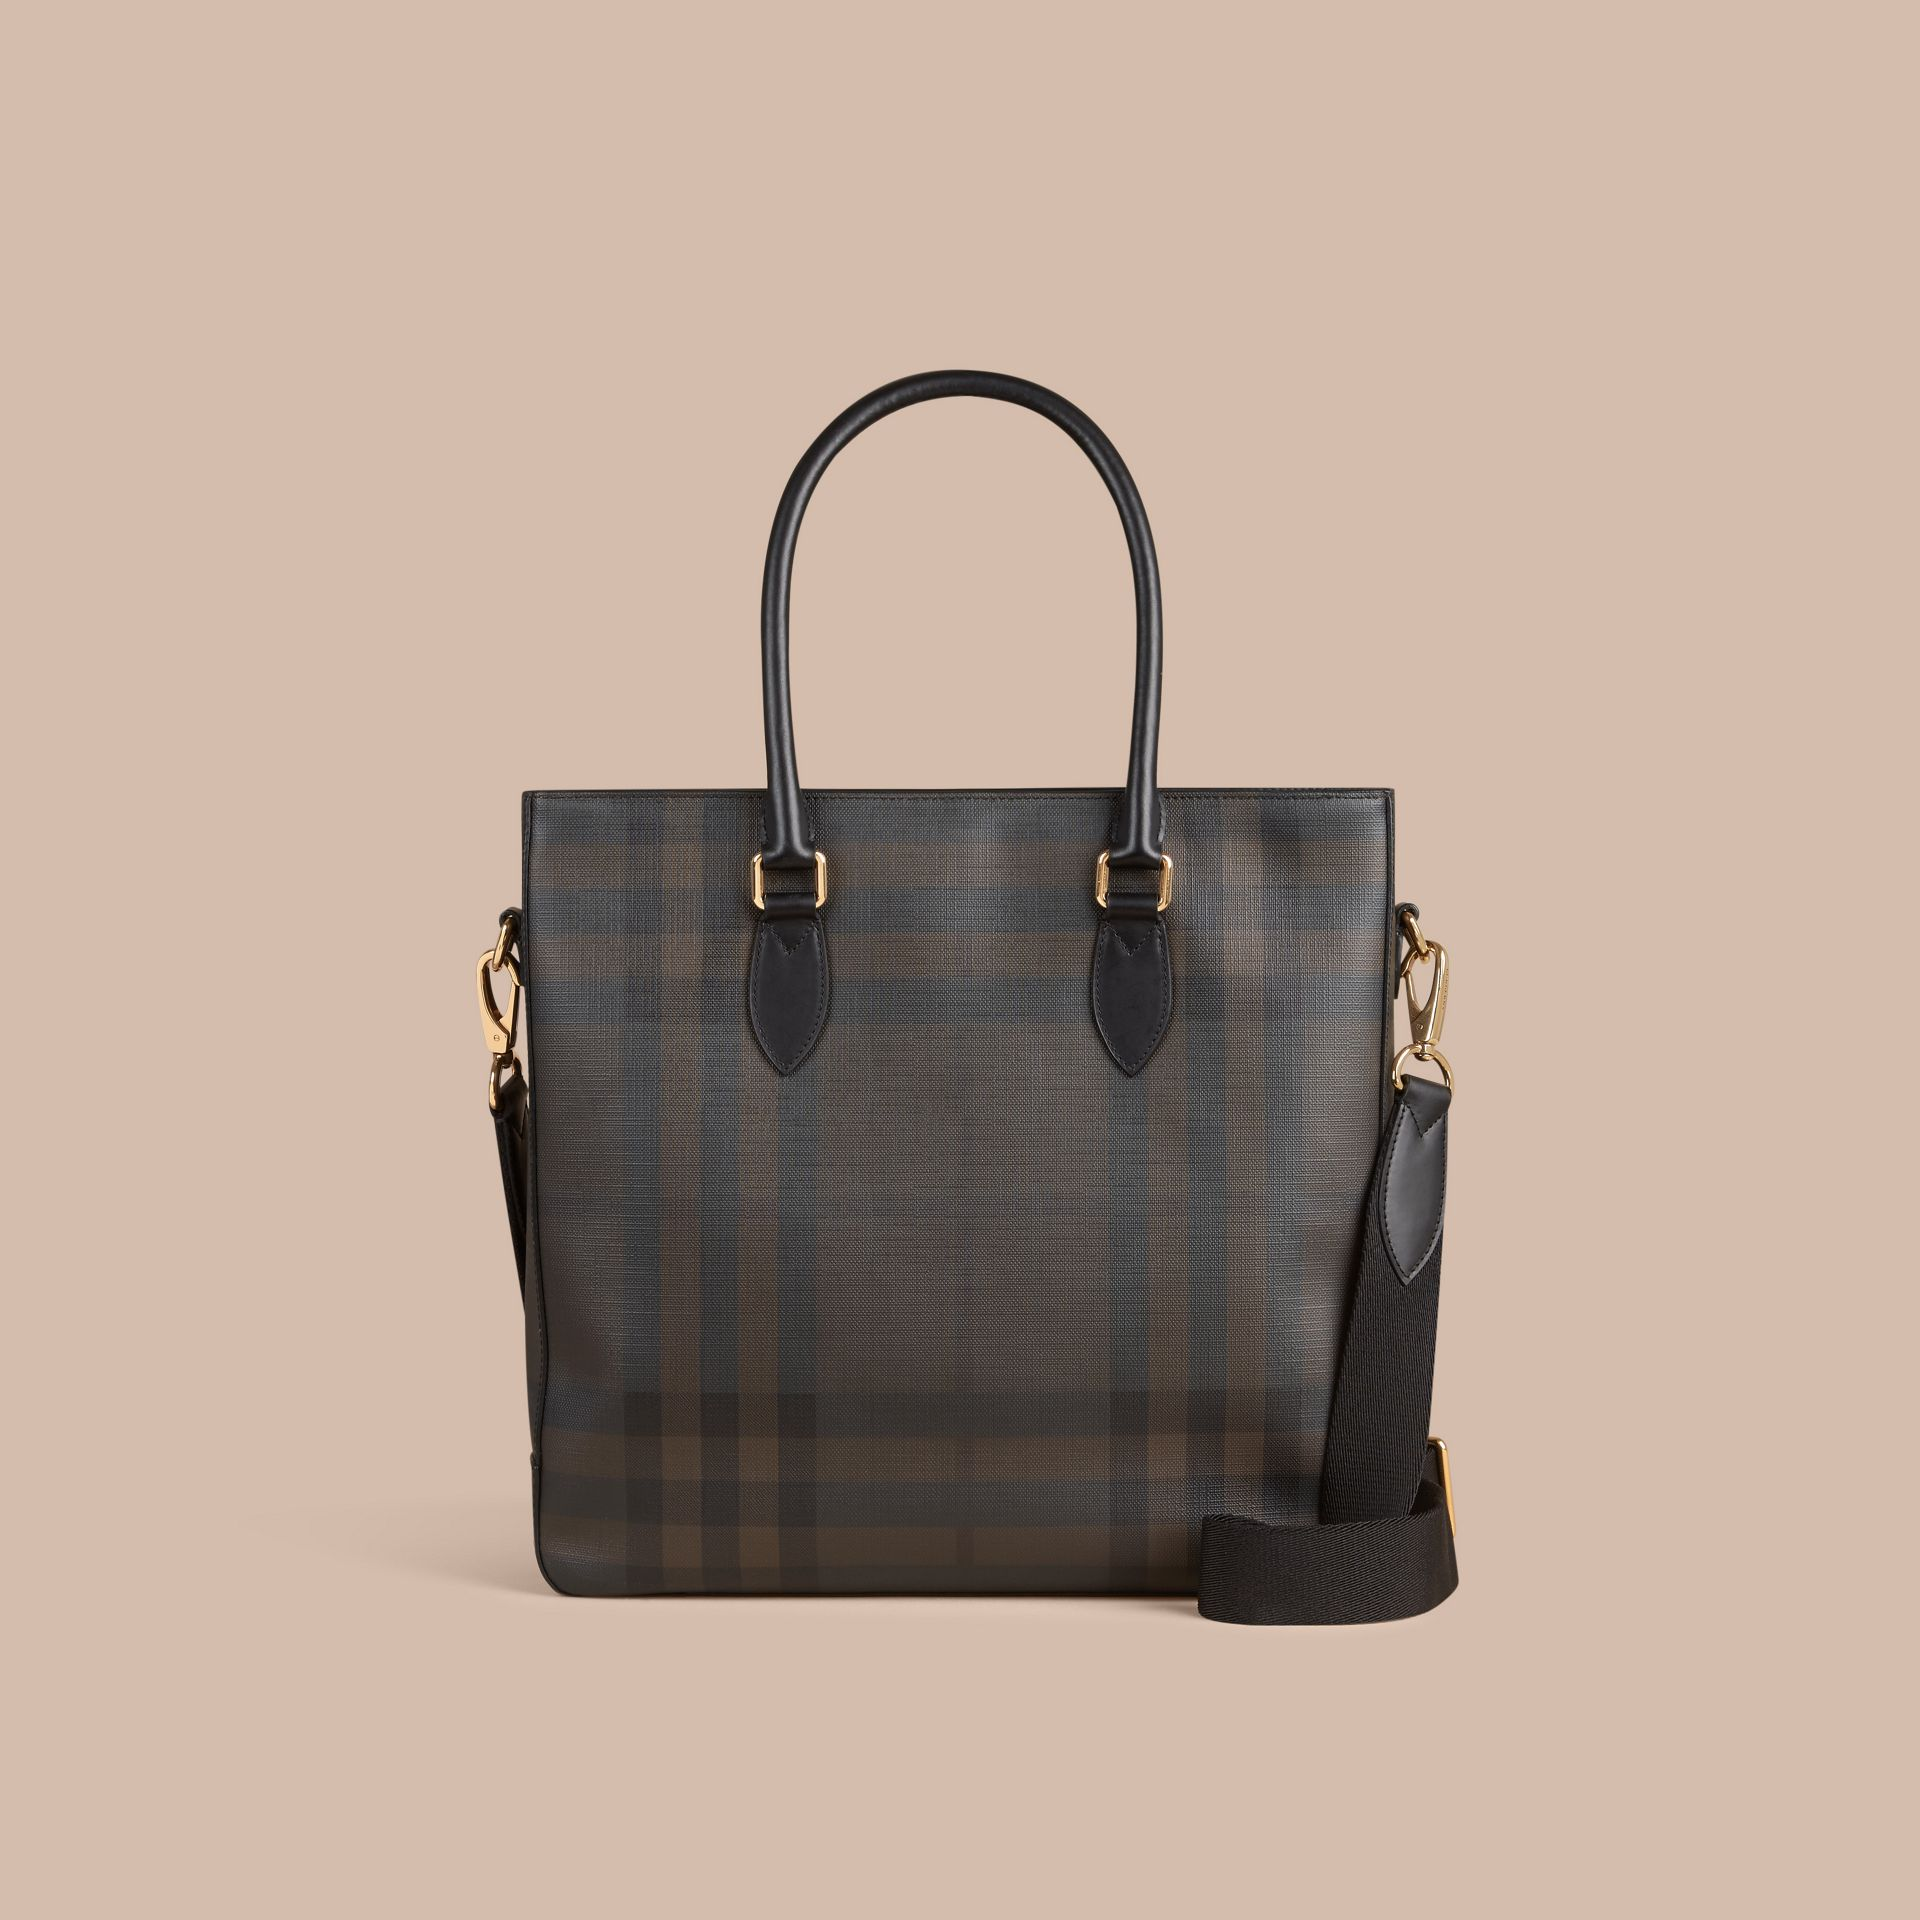 Sac tote à motif London check (Noir/chocolat) - Homme | Burberry - photo de la galerie 7